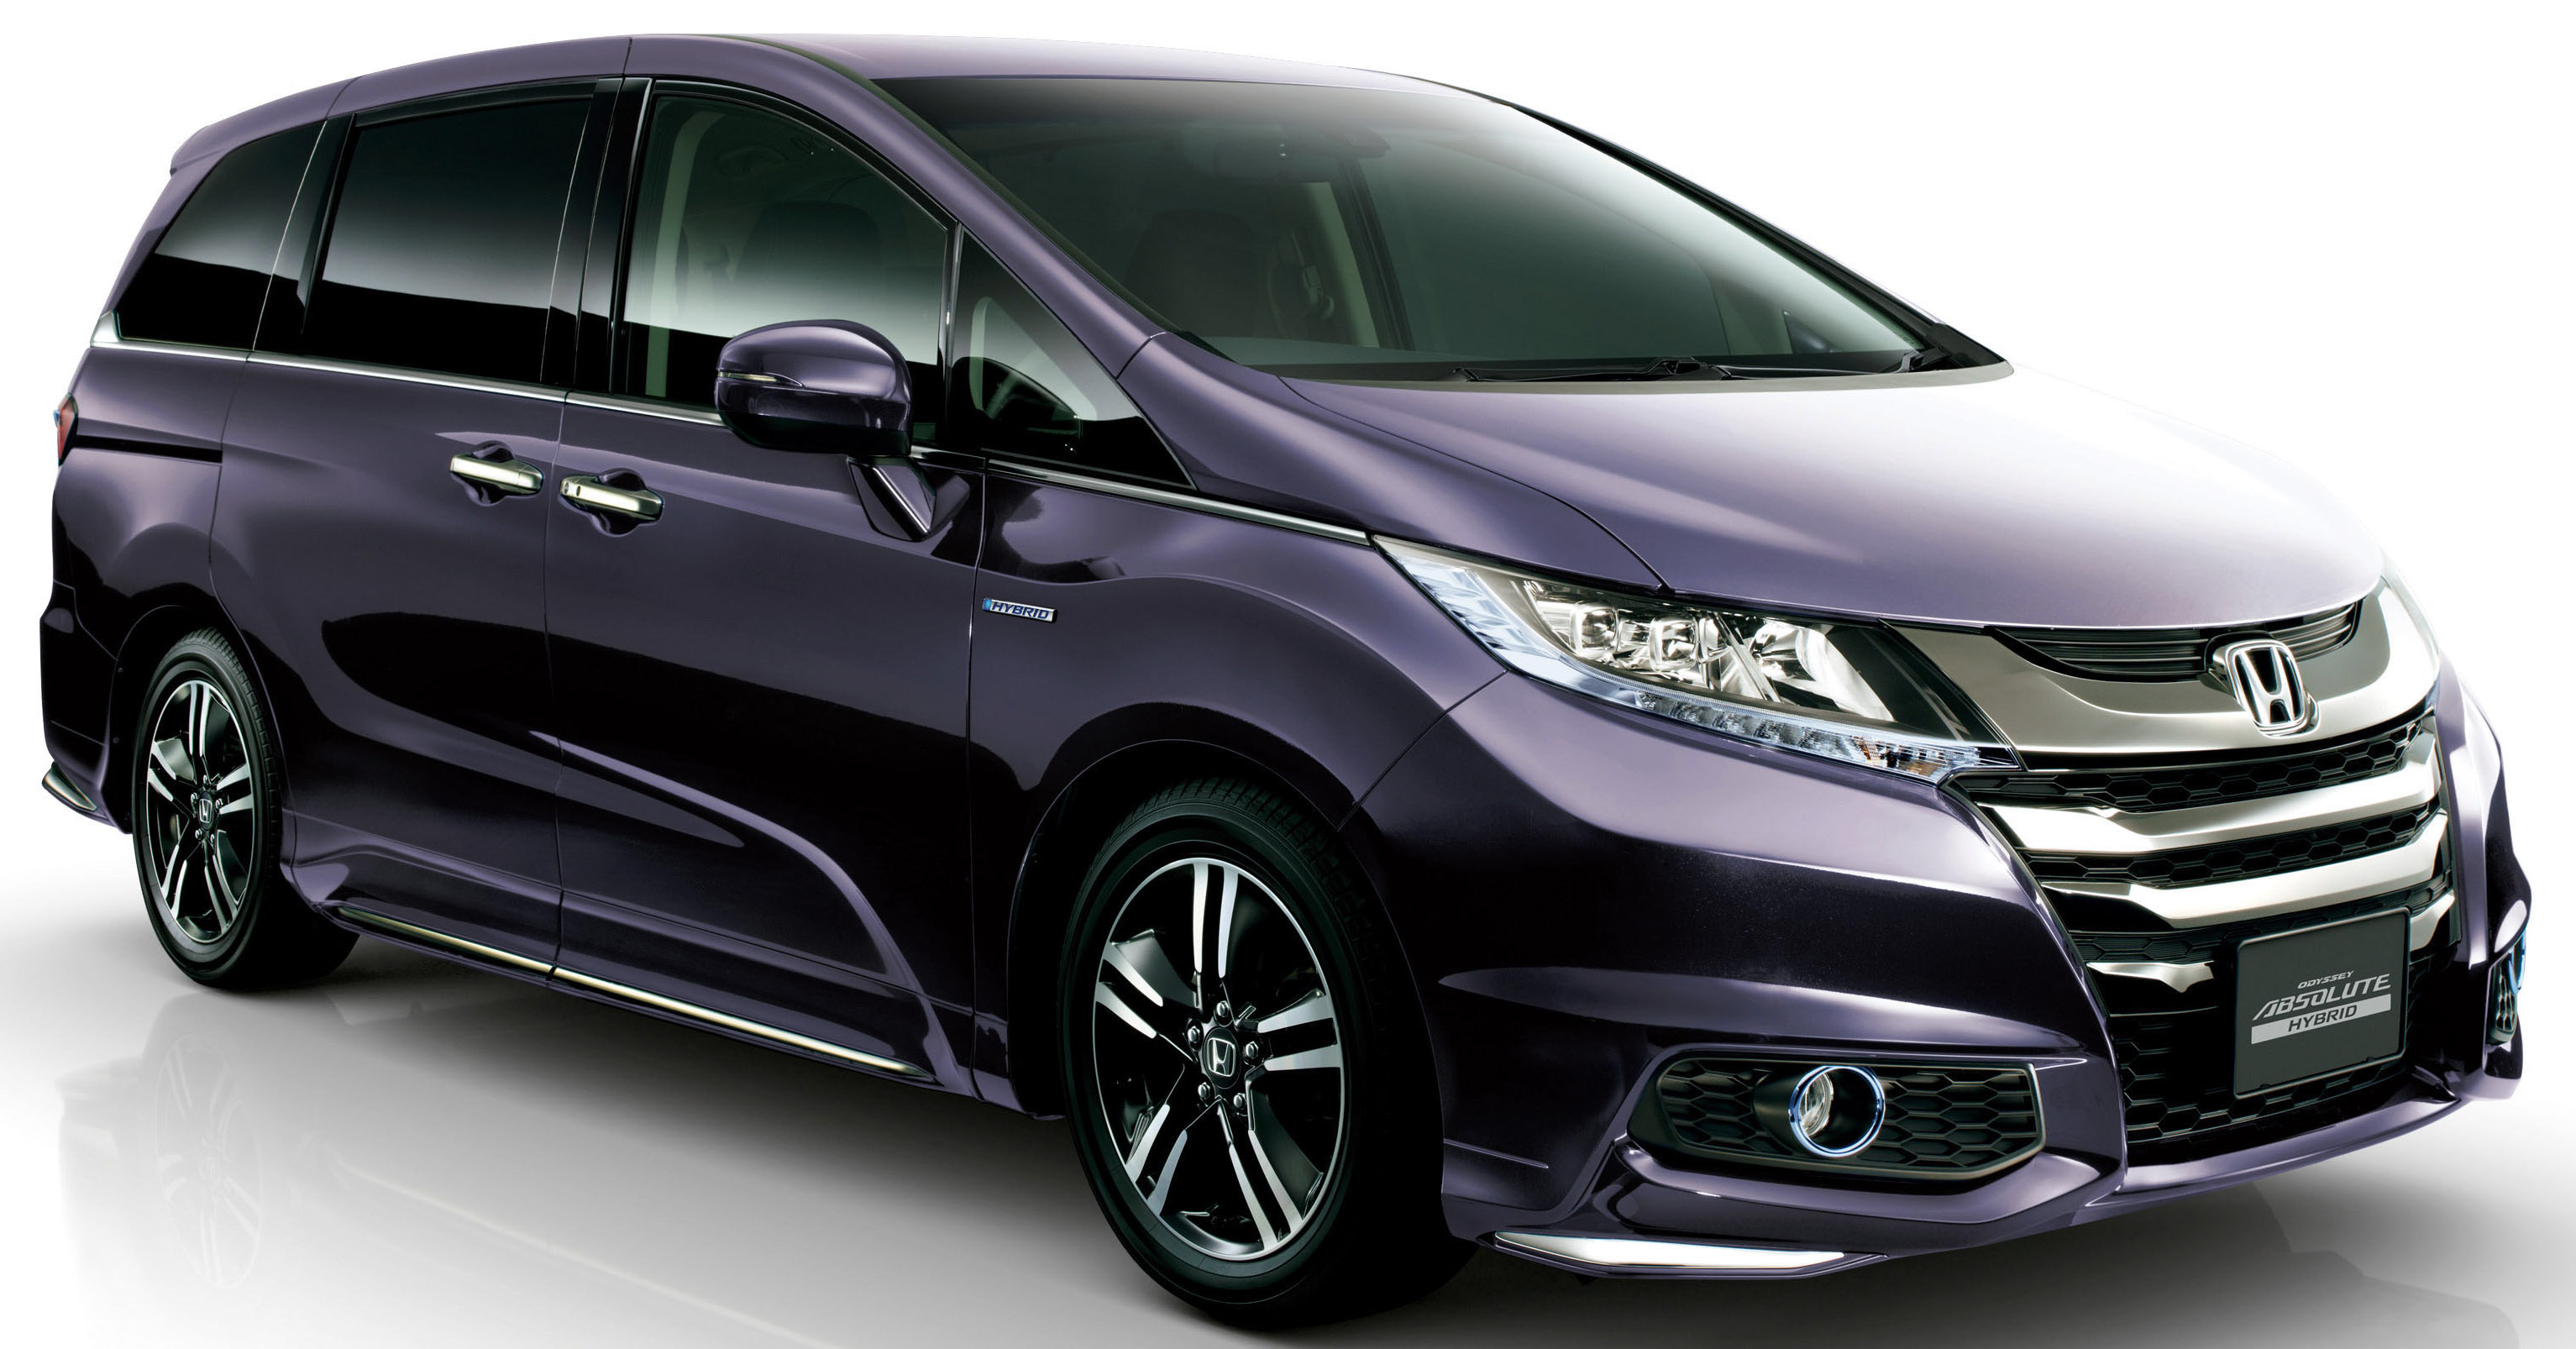 honda odyssey pictures posters news and videos on your pursuit hobbies interests and worries. Black Bedroom Furniture Sets. Home Design Ideas